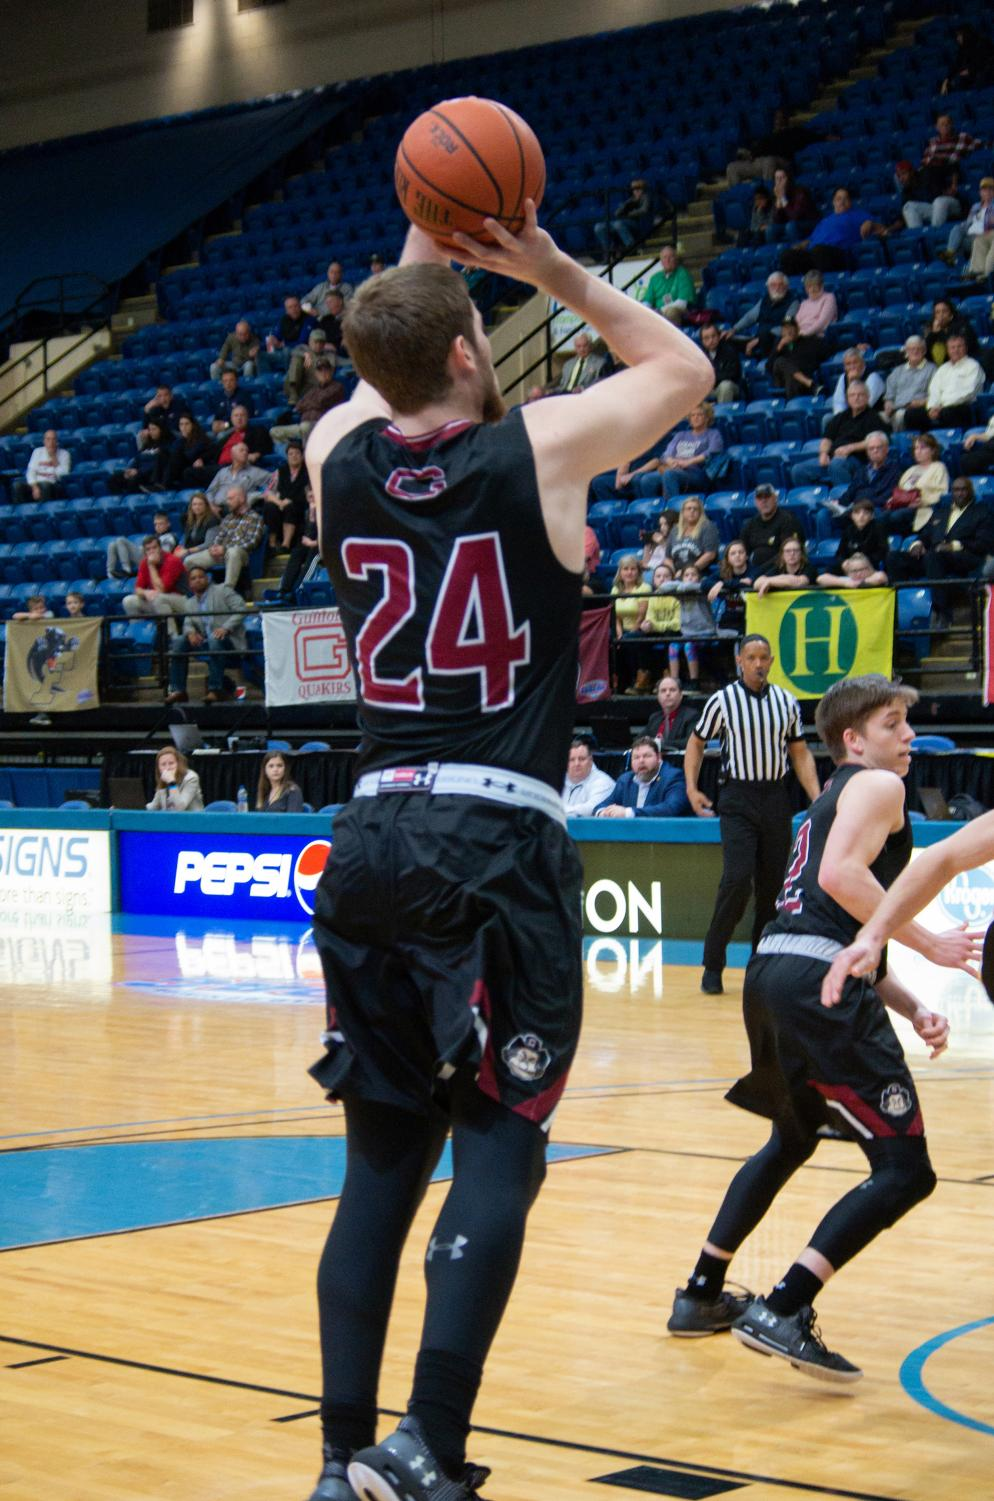 Guilford College junior forward Kyler Gregory scores in the ODAC Tournament Championship game on Feb.24. On Mar. 8, Gregory led Guilford with 31 points in a loss to University of Wisconsin-Oshkosh in the NCAA Division III Championship Quarterfinals.(File photo)//Photo by Andrew walker/The Guilfordian